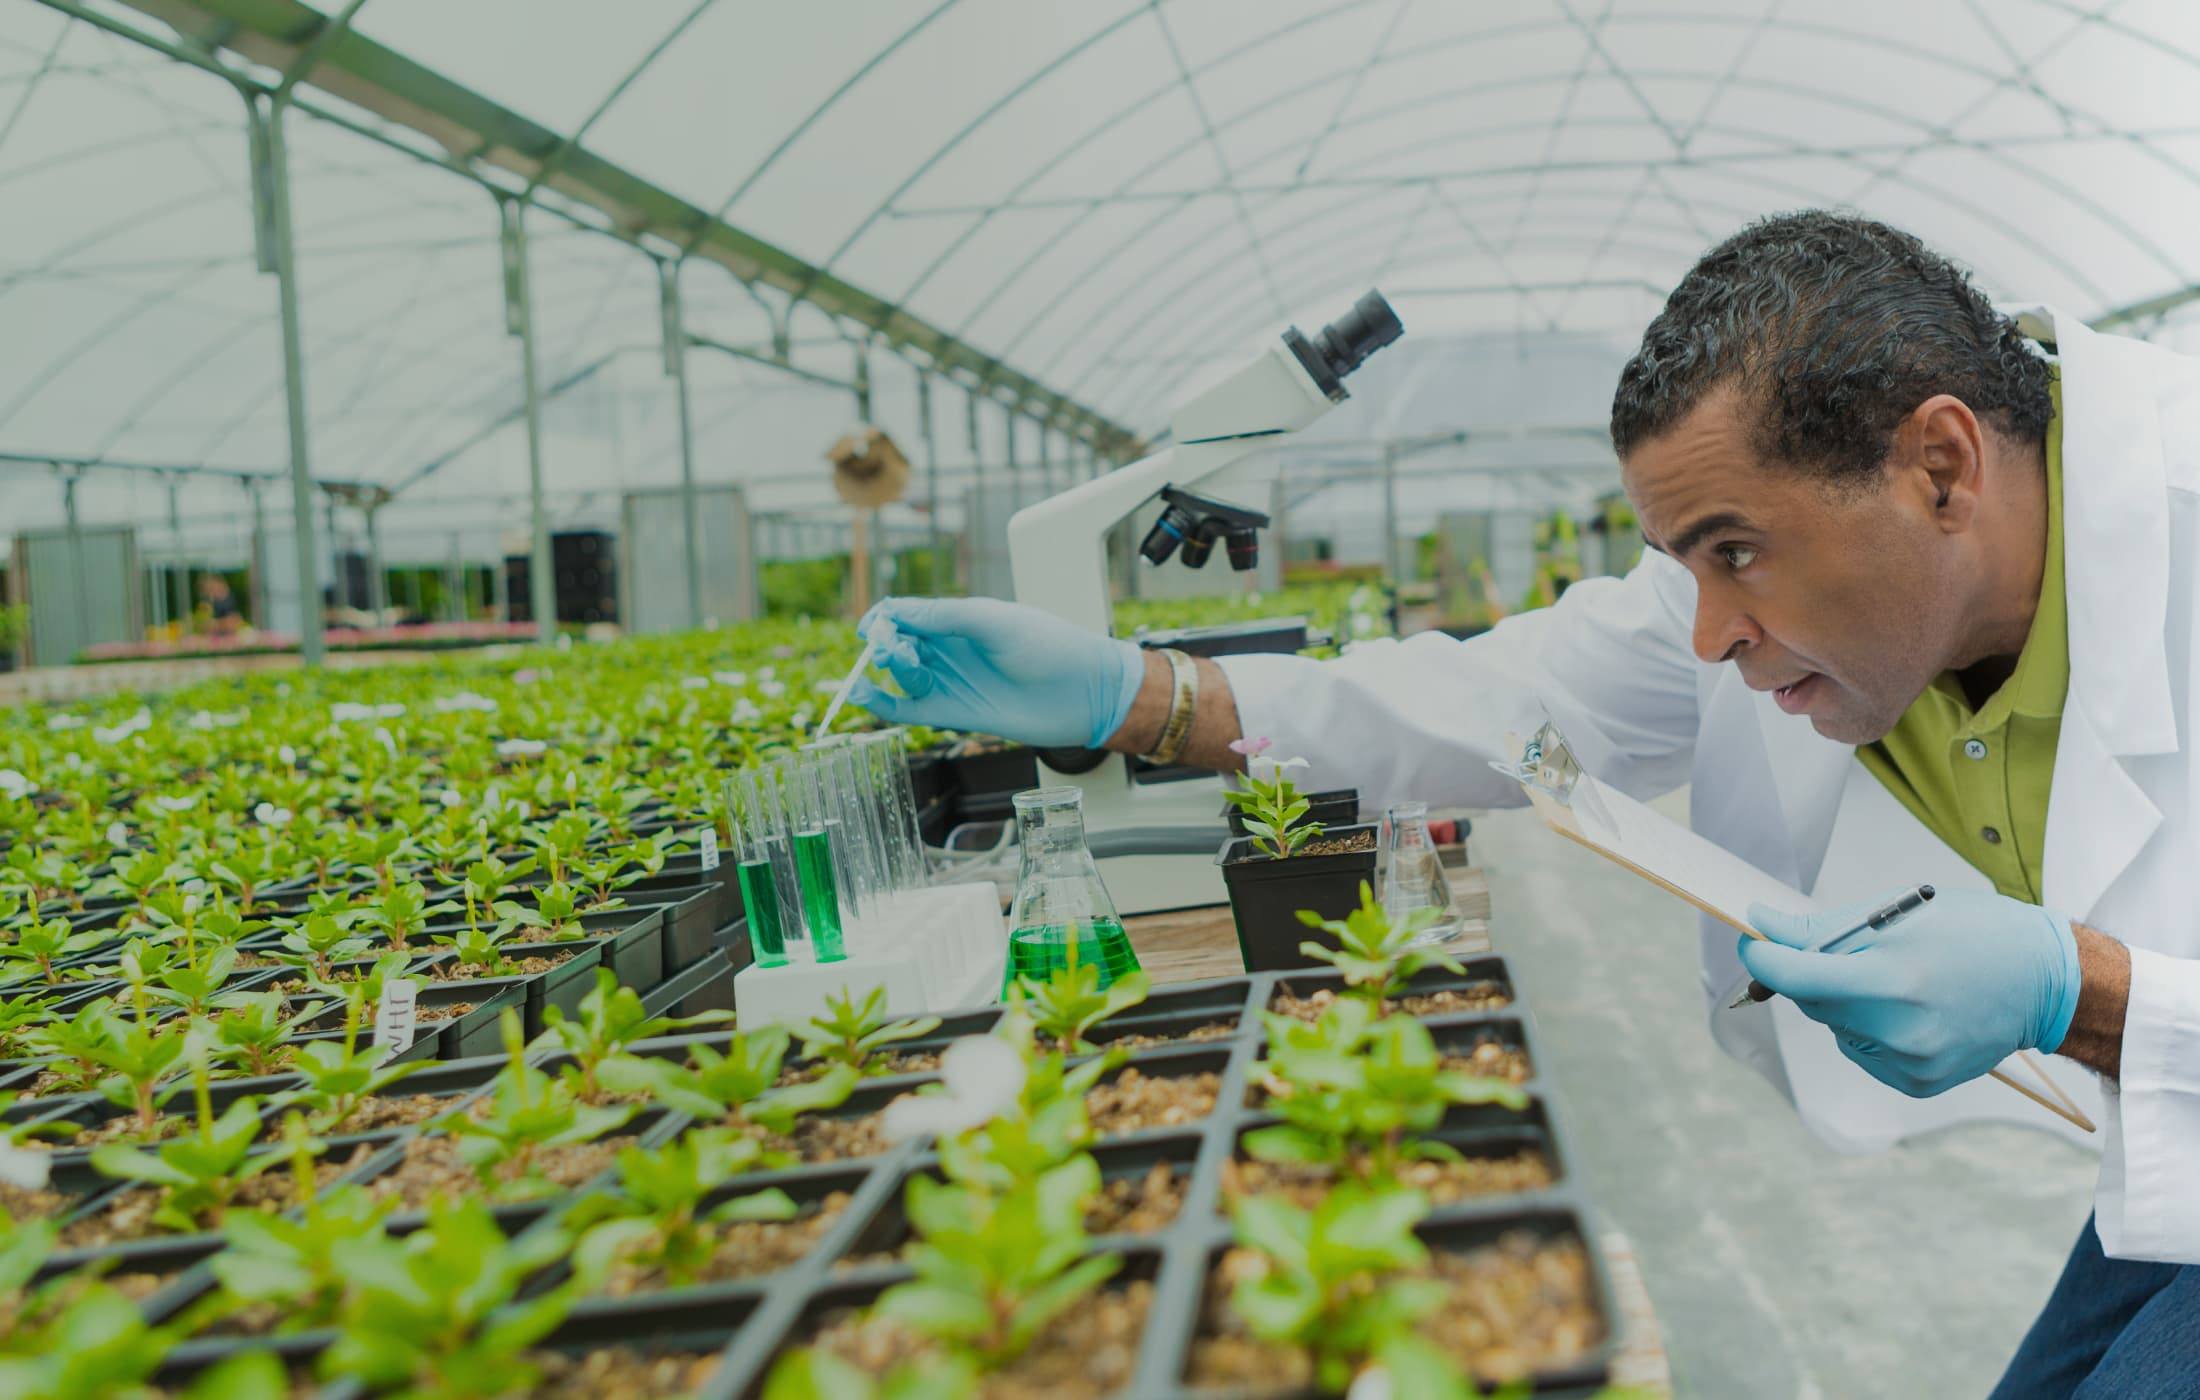 thesis in horticulture The ms degree consists of course work and original research, which is reported in a thesis the research is performed under the guidance of the major professor the study program, ie, the list of graduate courses to be taken, is developed under the guidance of the major professor and a committee of graduate faculty organized by the student.